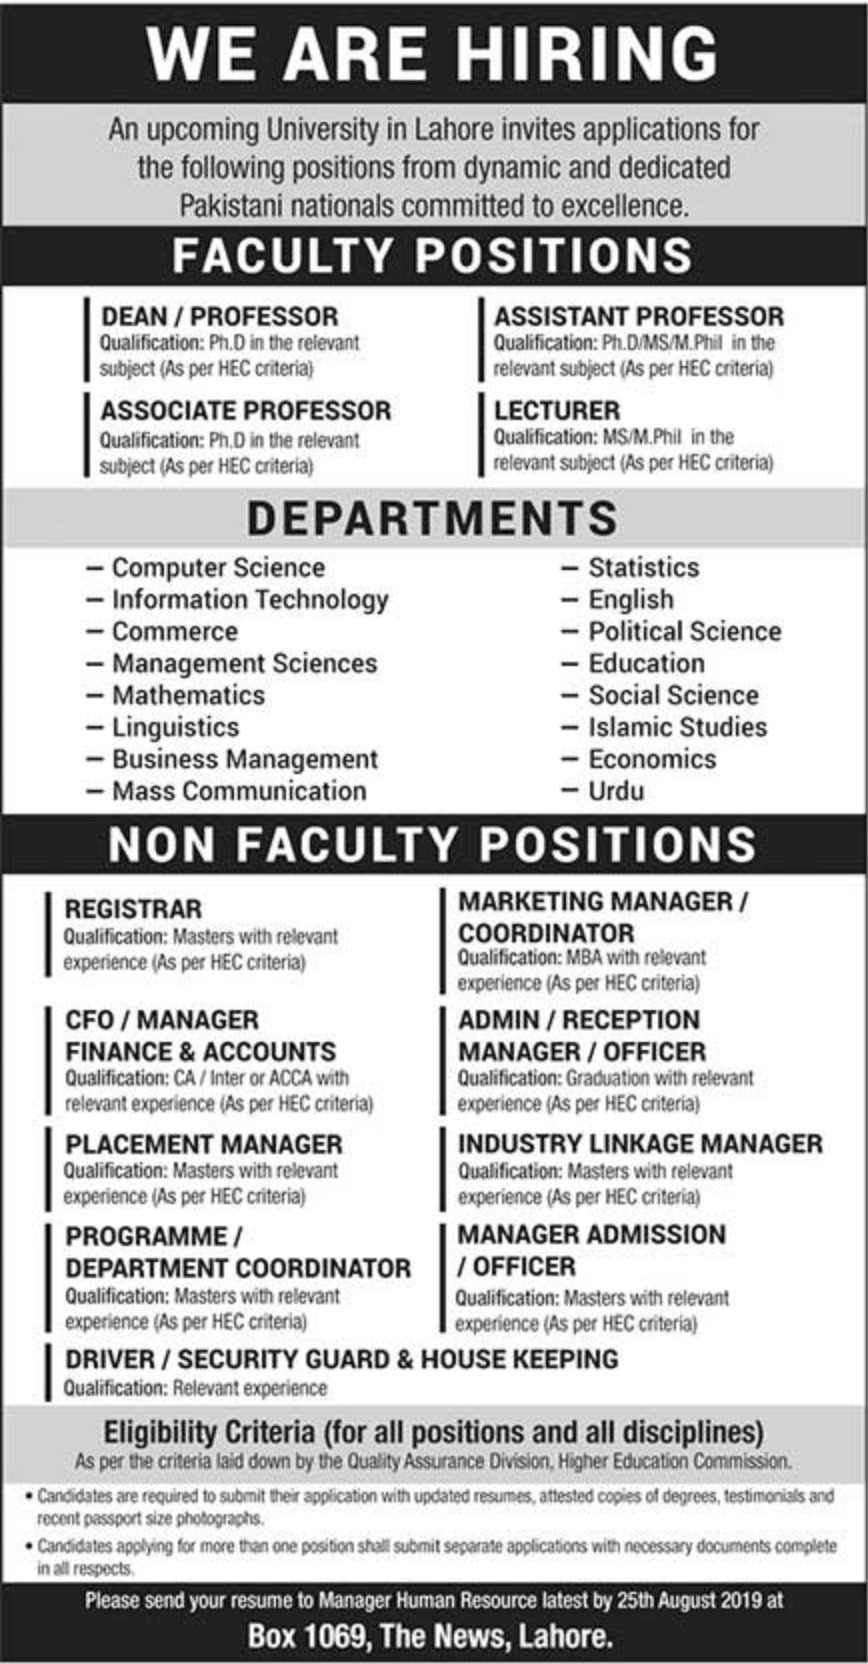 Upcoming University Jobs 2019 P.O.Box 1069 Lahore